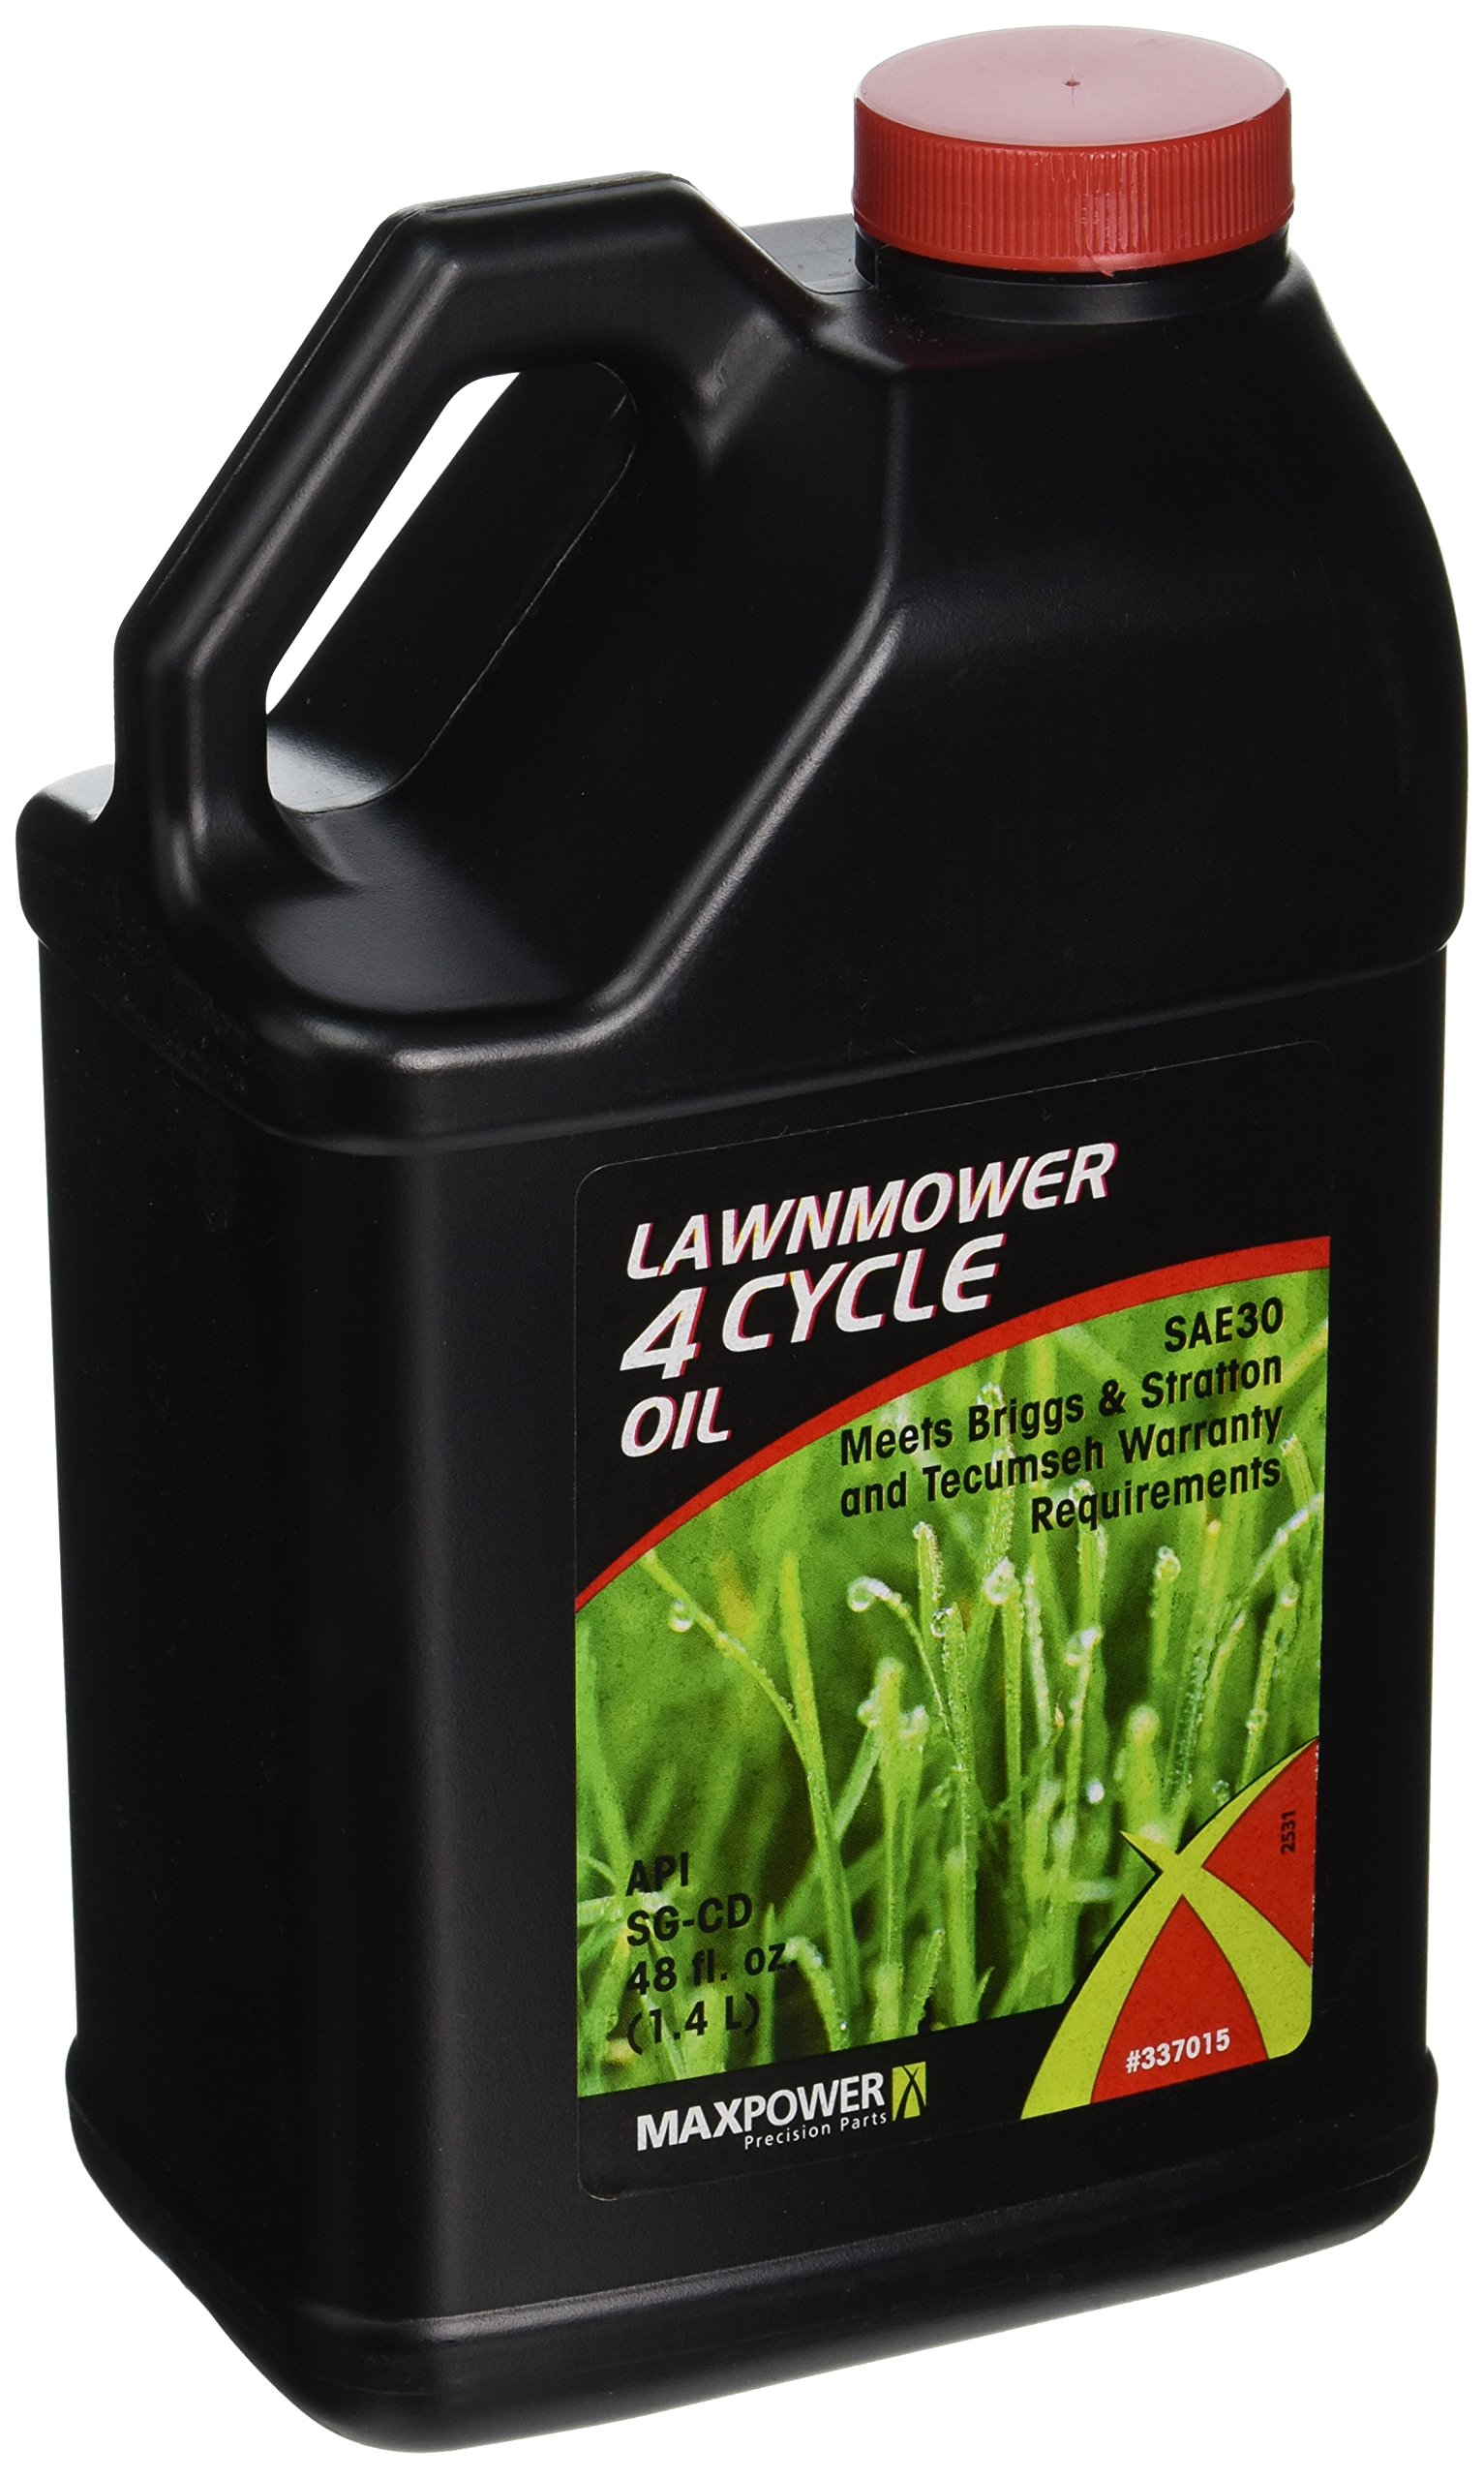 Maxpower 337015 48-Ounce 4 Cycle Lawn Mower Oil by Maxpower